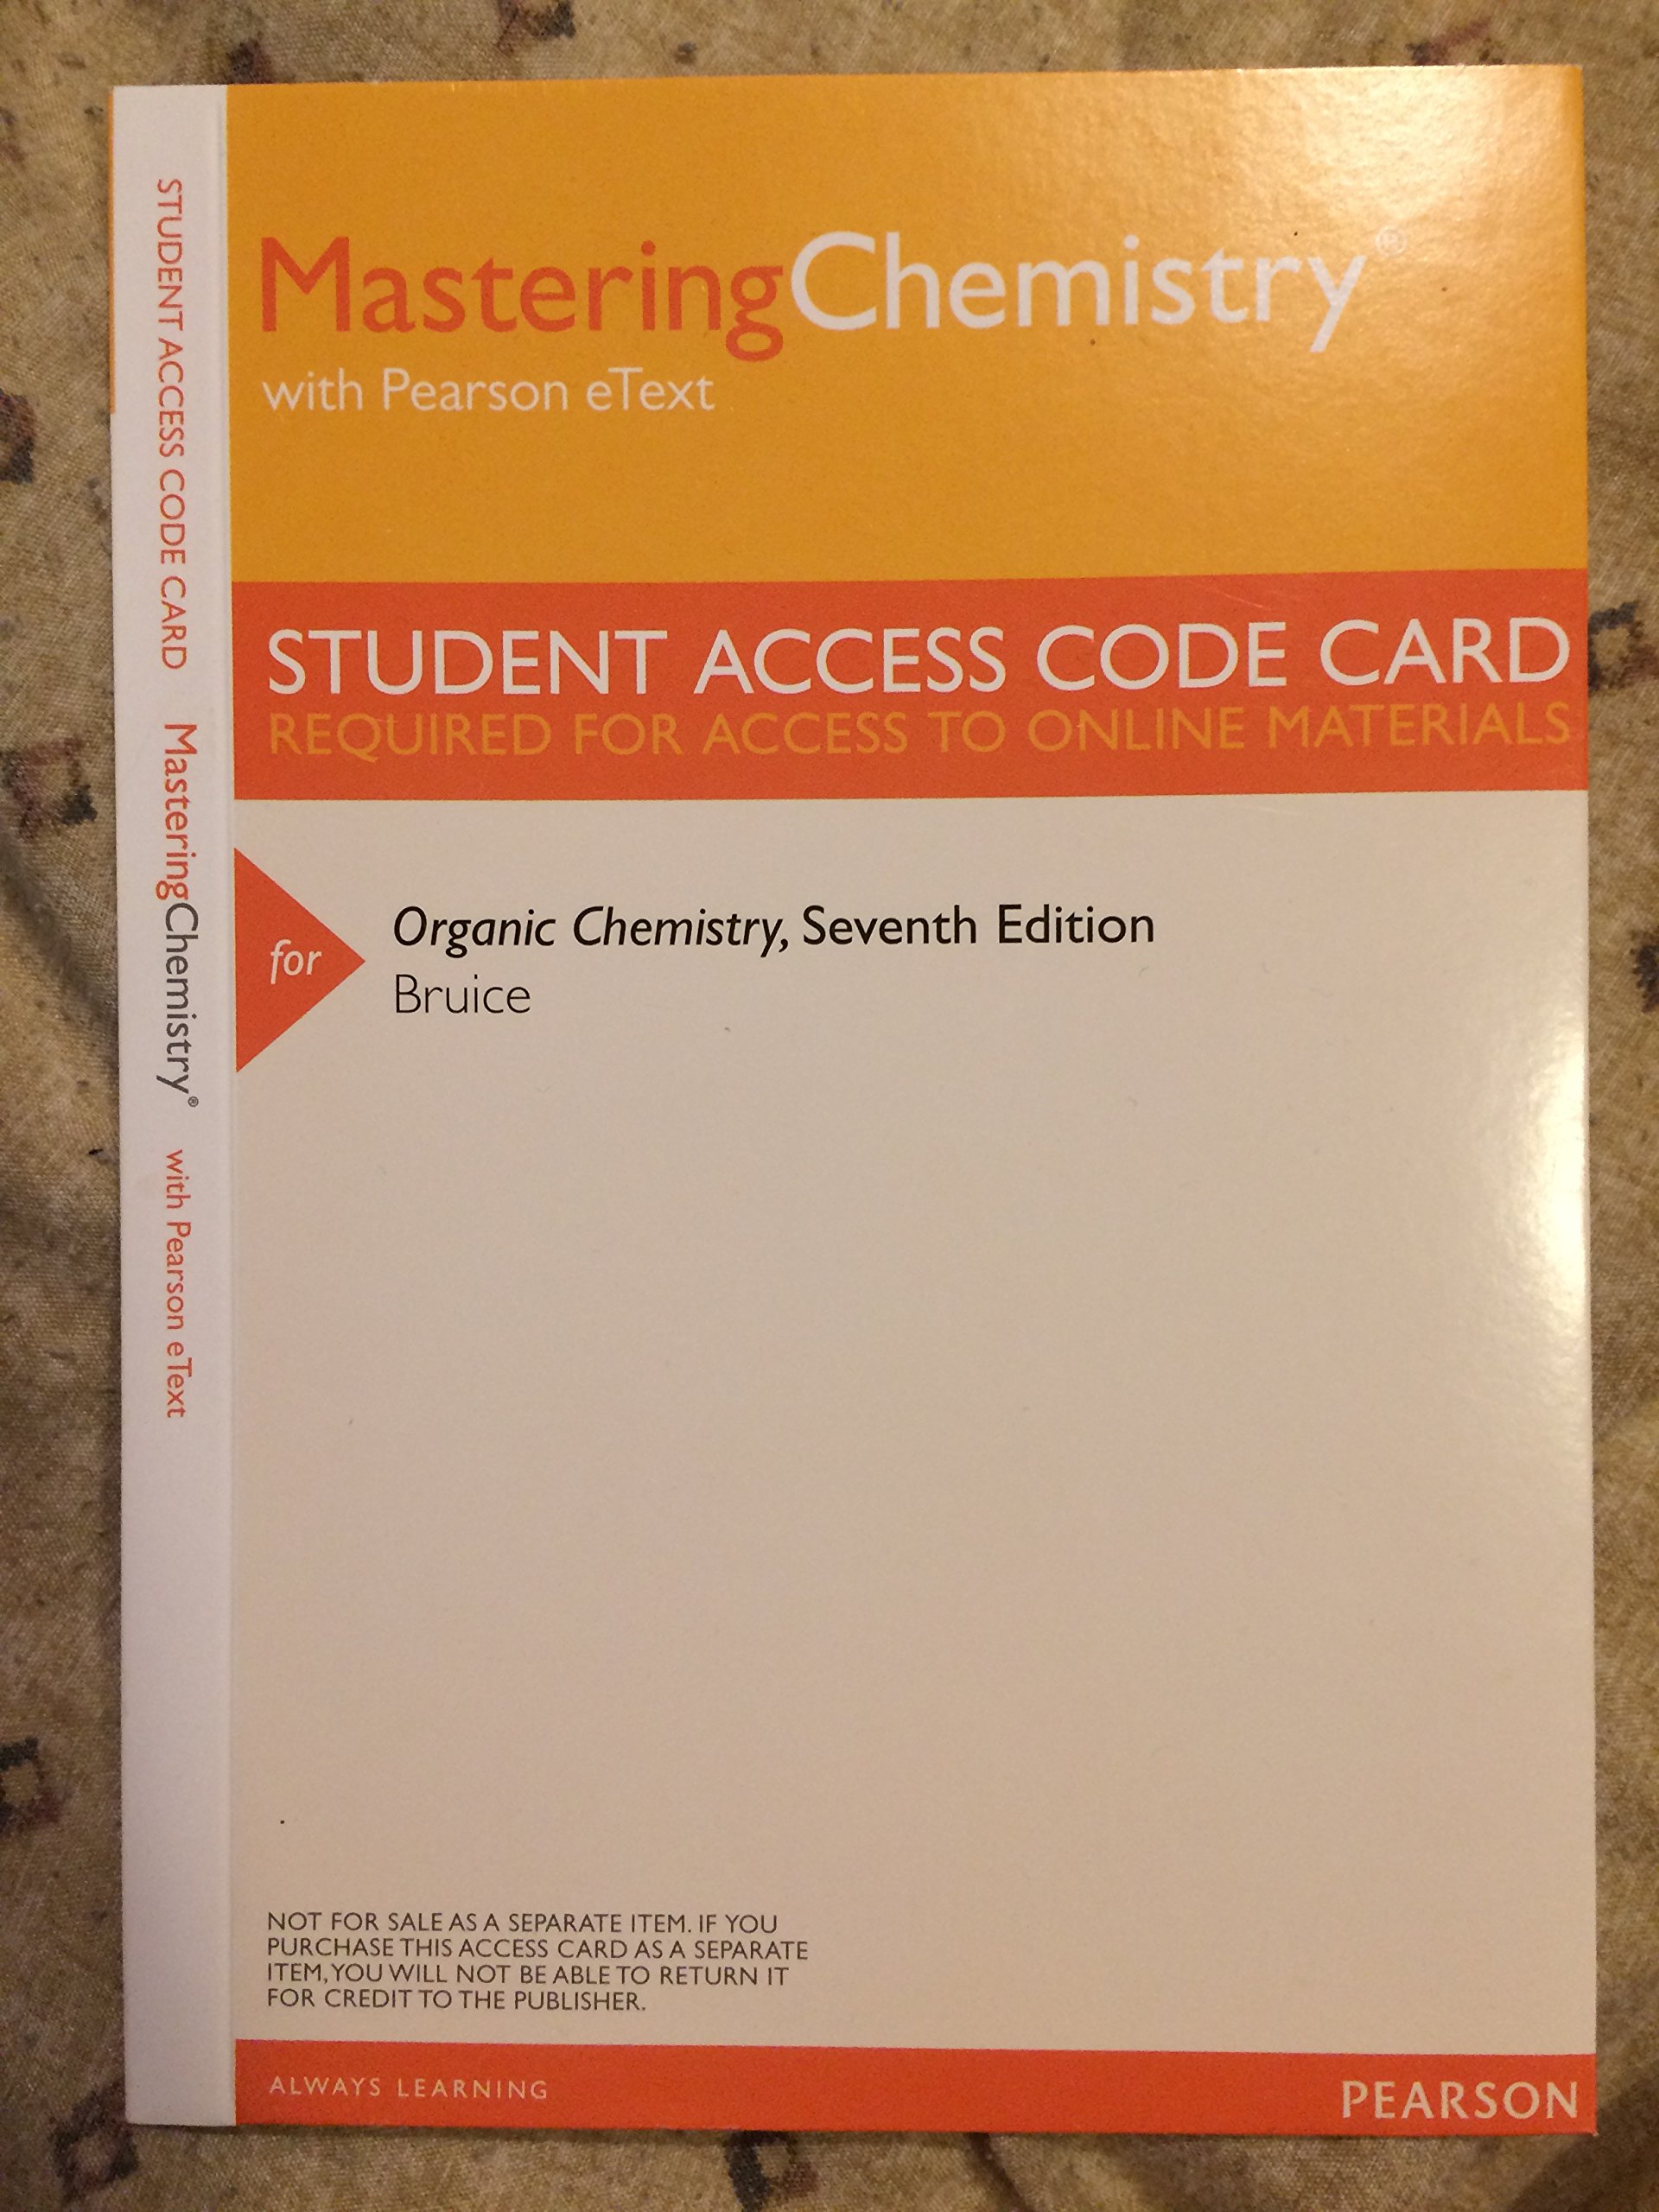 Organic chemistry 7th edition paula bruice pearson 9781269626484 organic chemistry 7th edition paula bruice pearson 9781269626484 amazon books fandeluxe